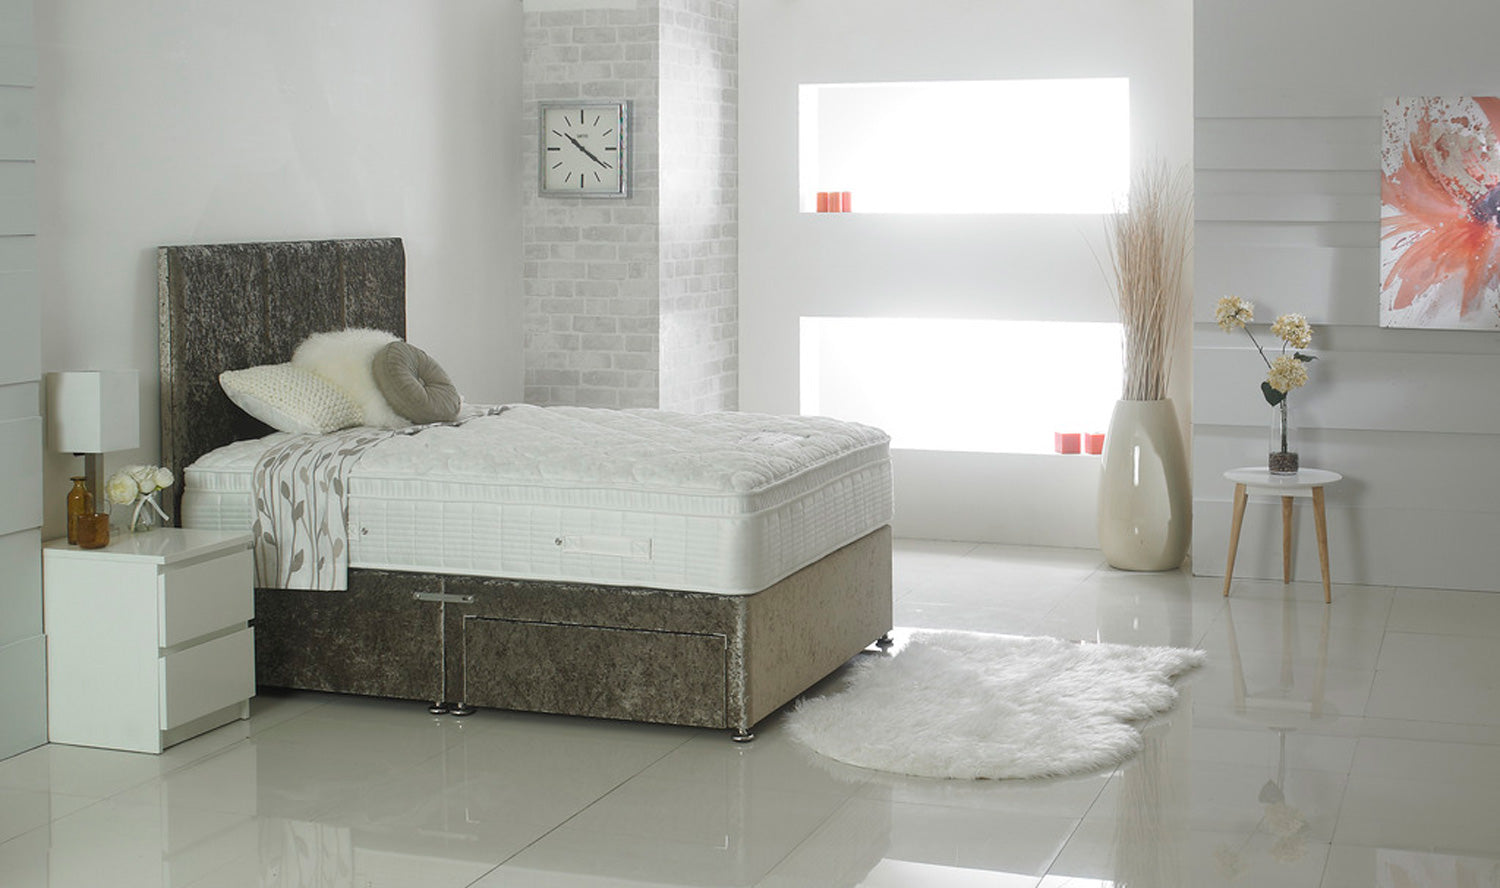 Celebration 1800 Deluxe (Mattress = Medium)